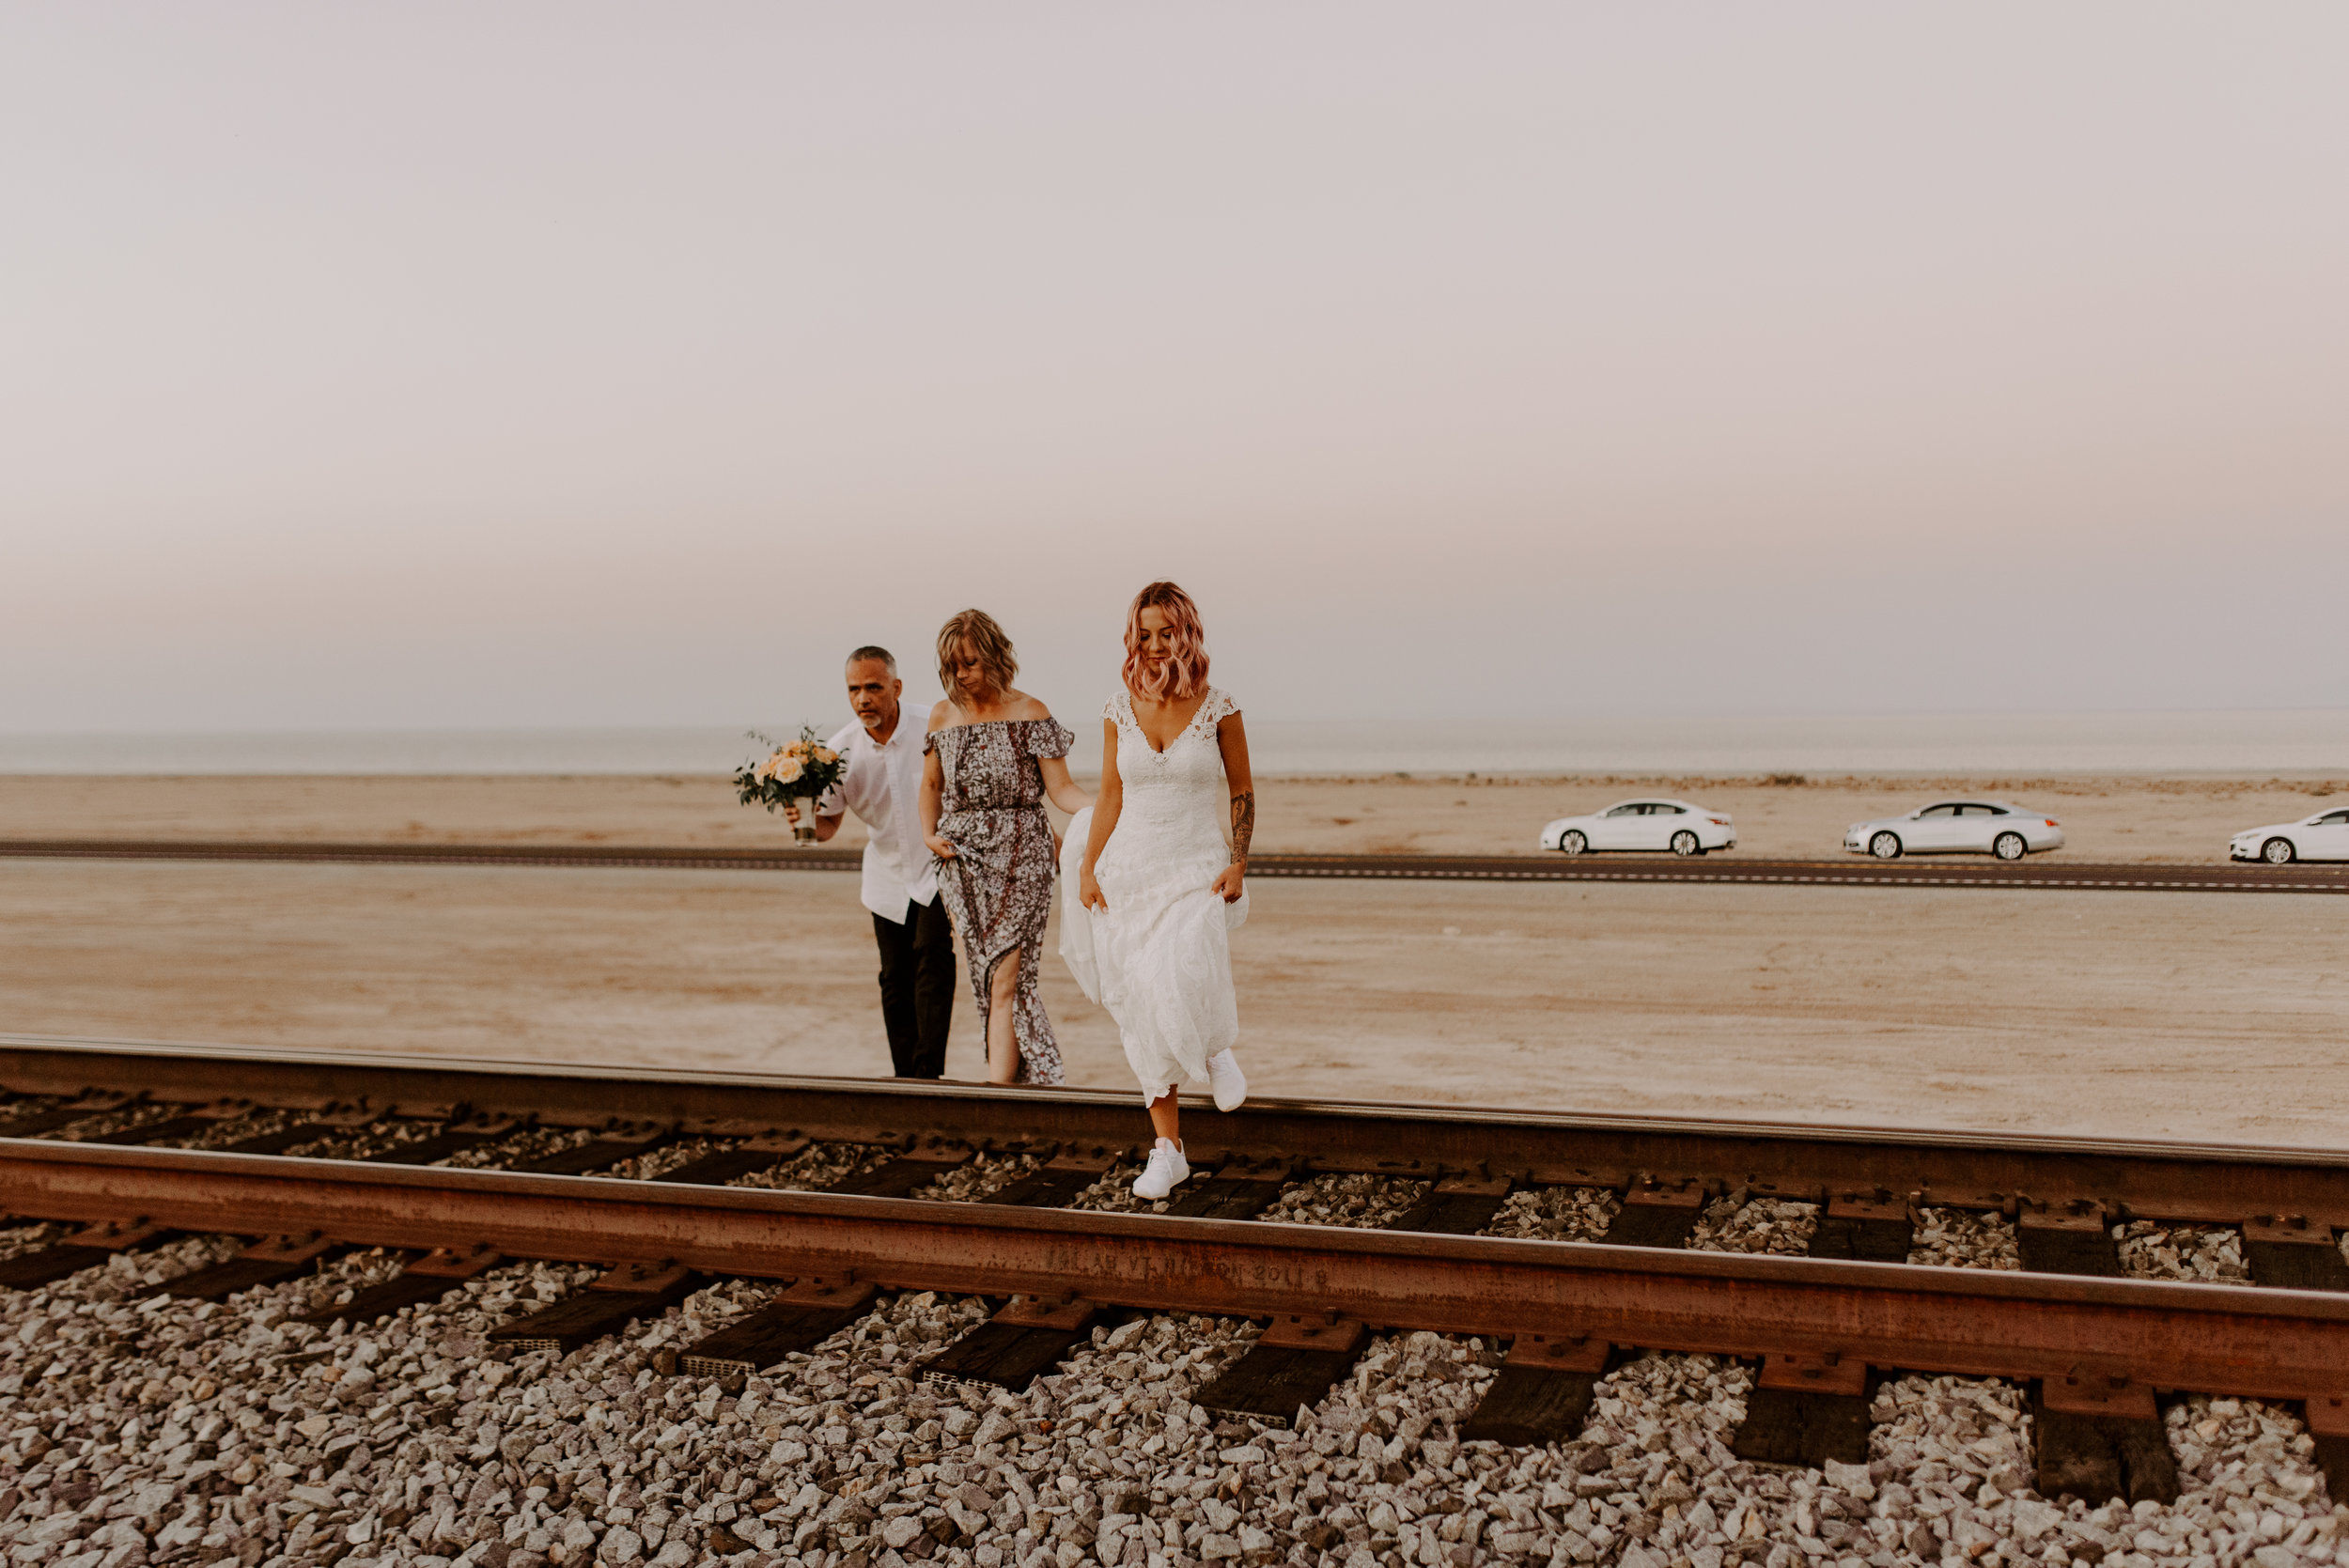 Kira and Brayden Elopement Highlights - Jessica Heron Images 027.JPG